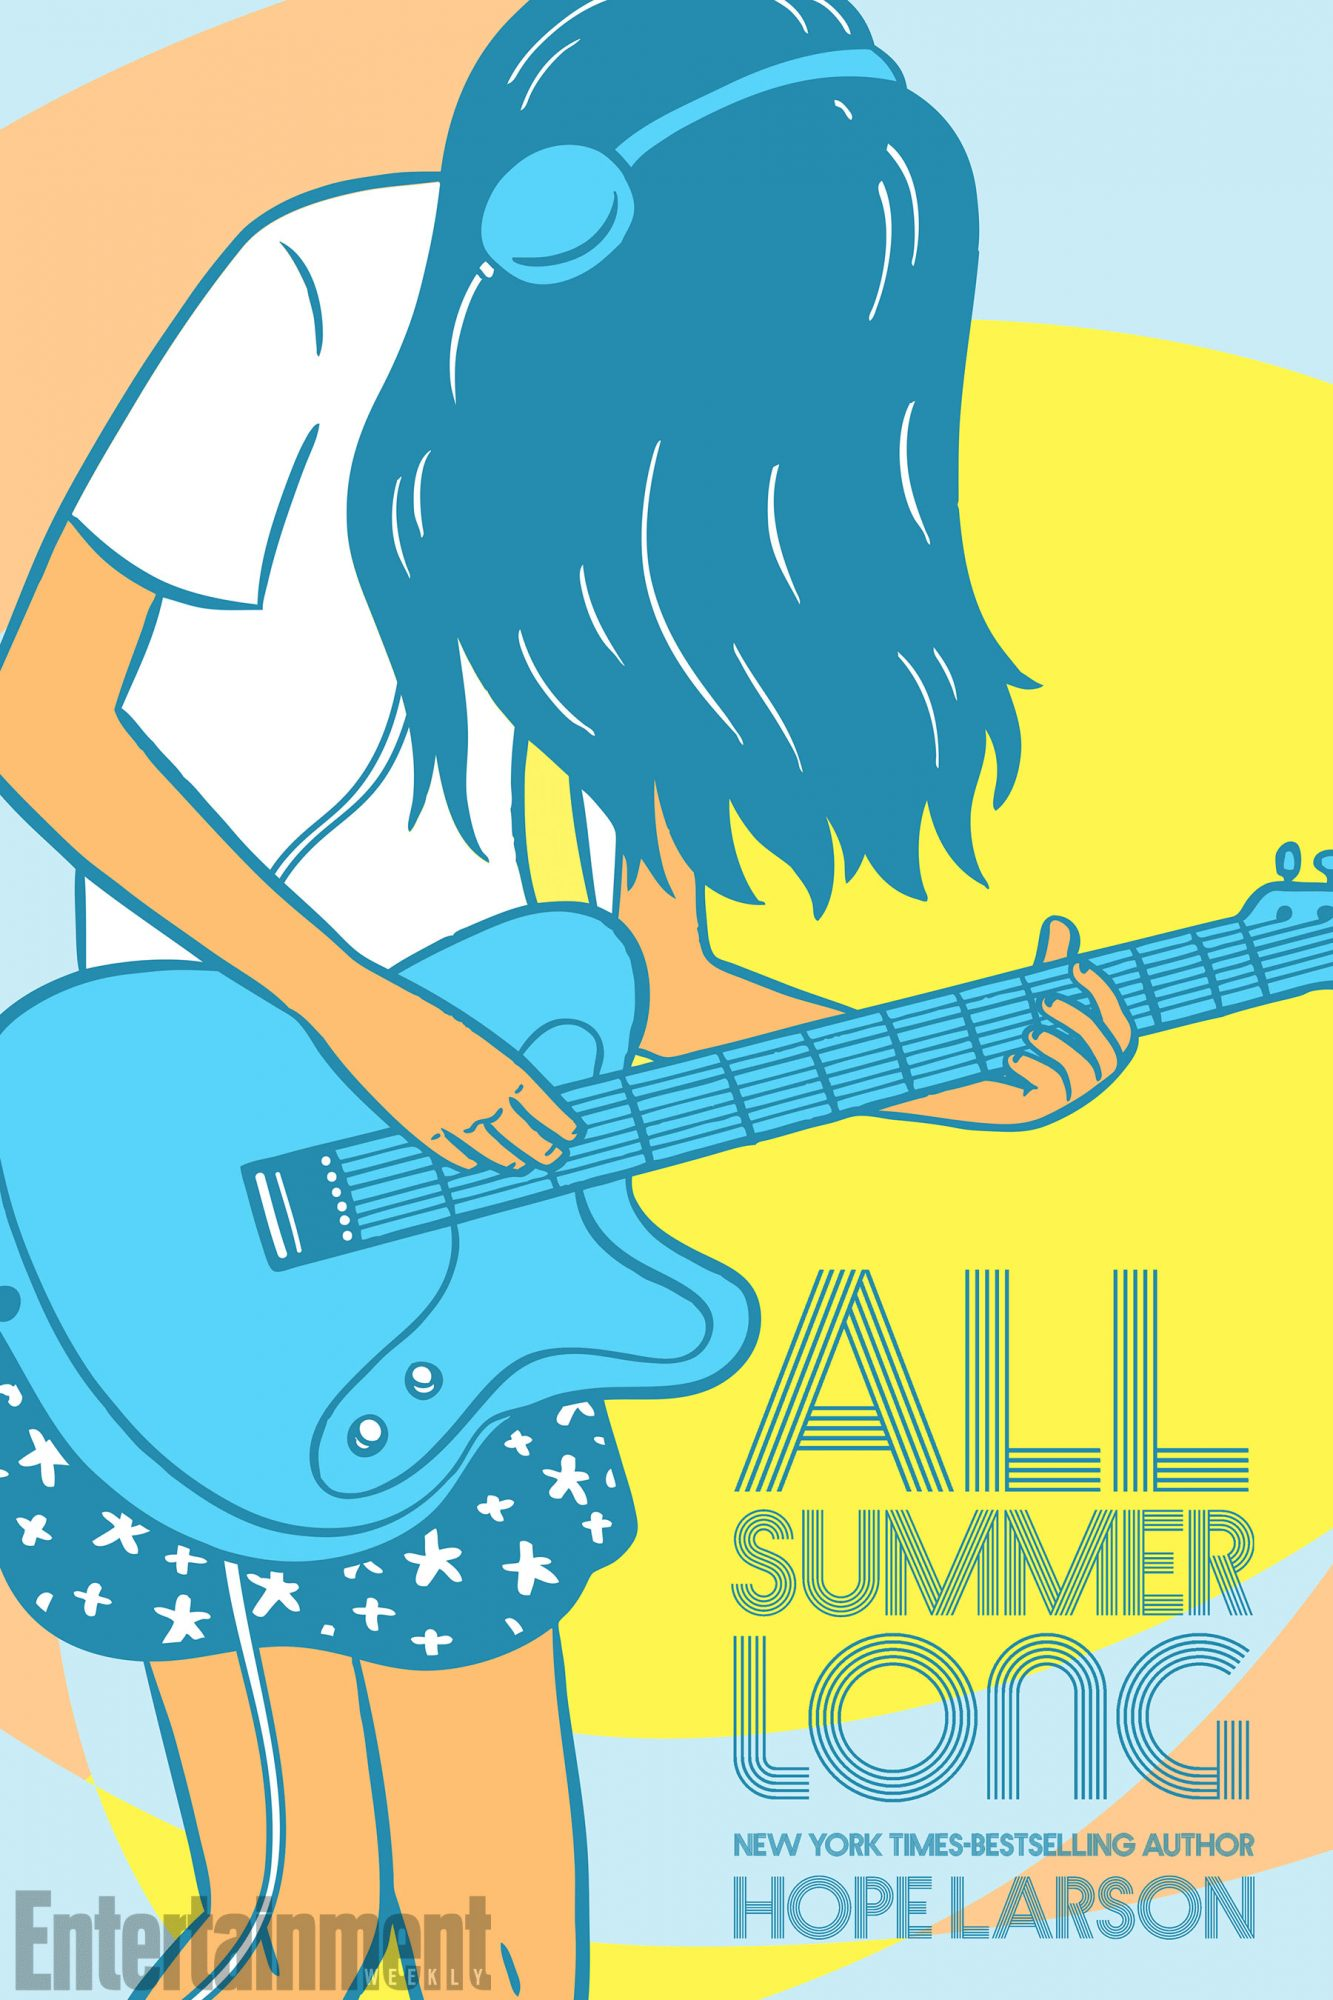 June 26, 2018                       All Summer Long by Hope Larson